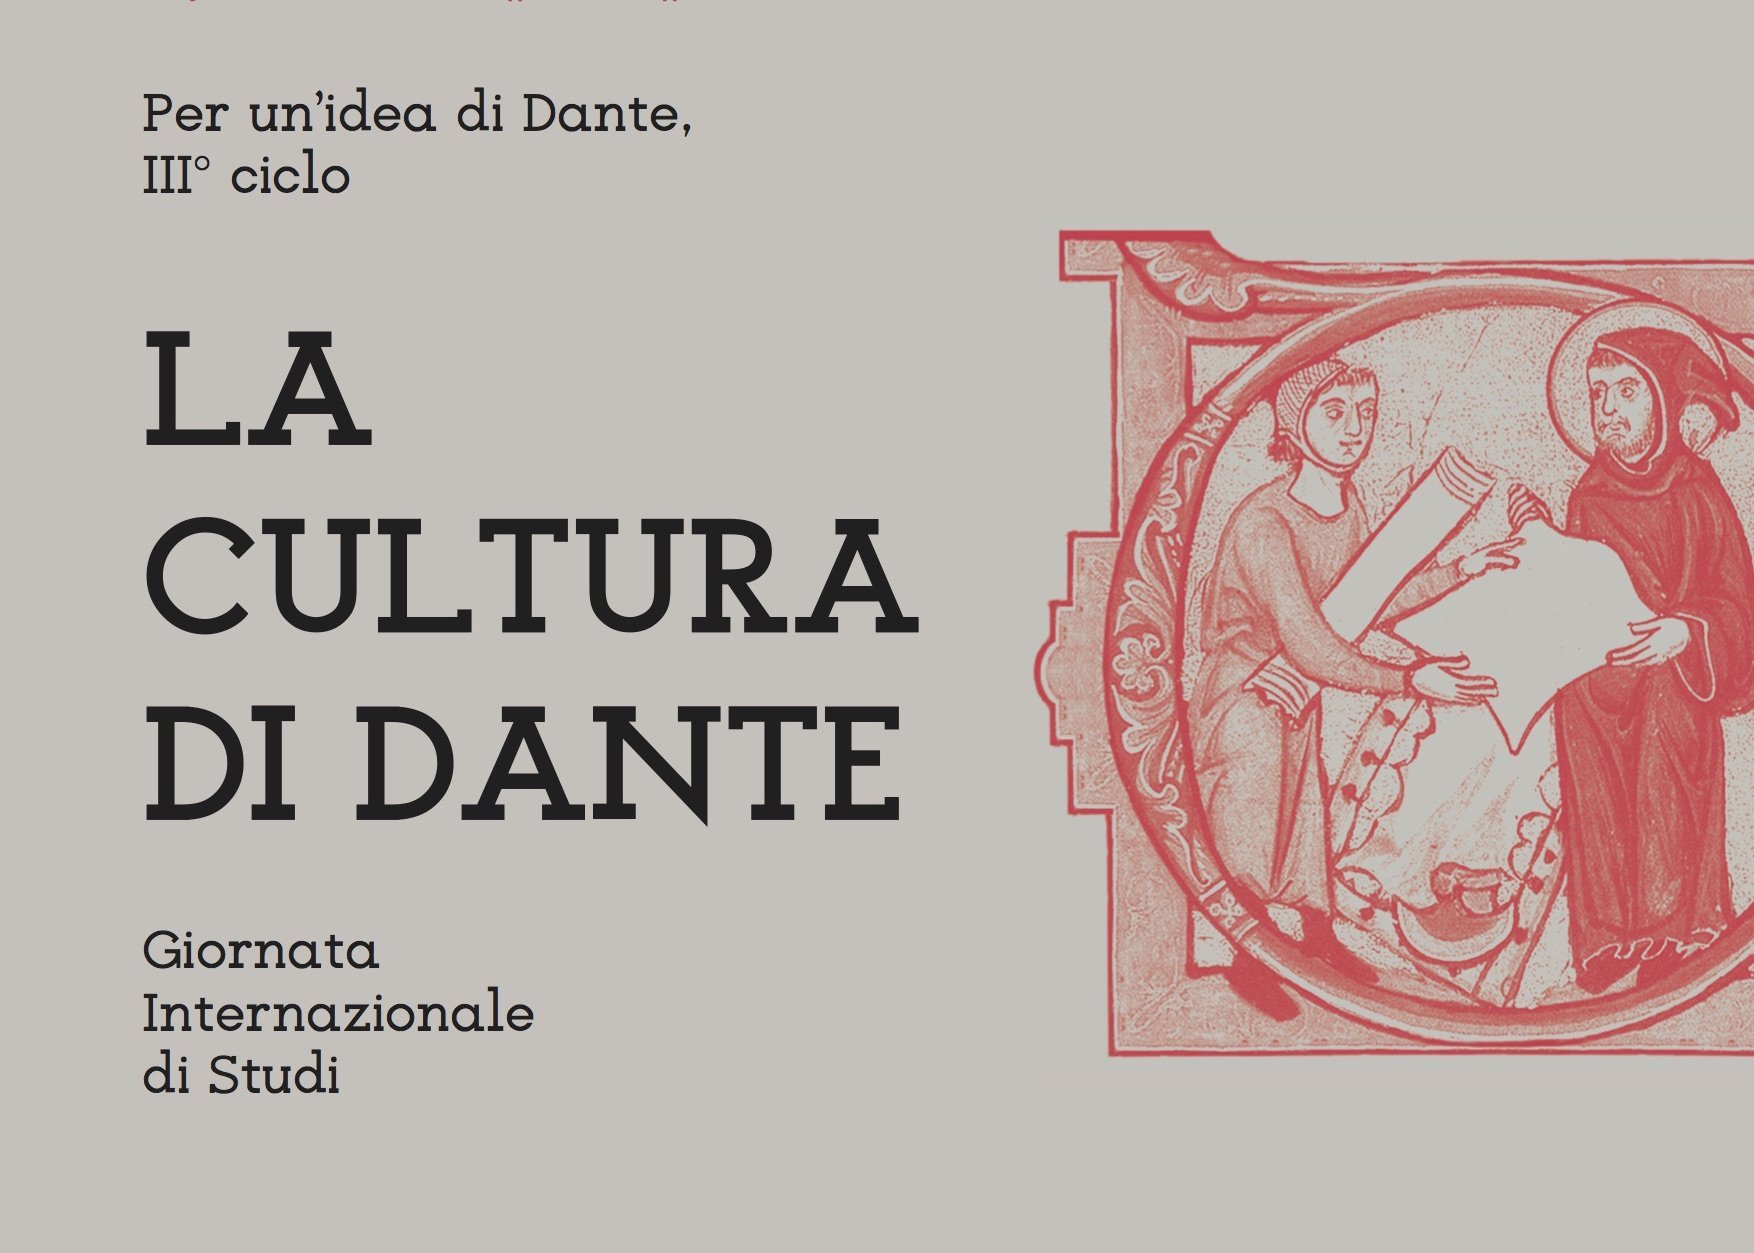 LA CULTURA DI DANTE Dante Alighieri and his culture